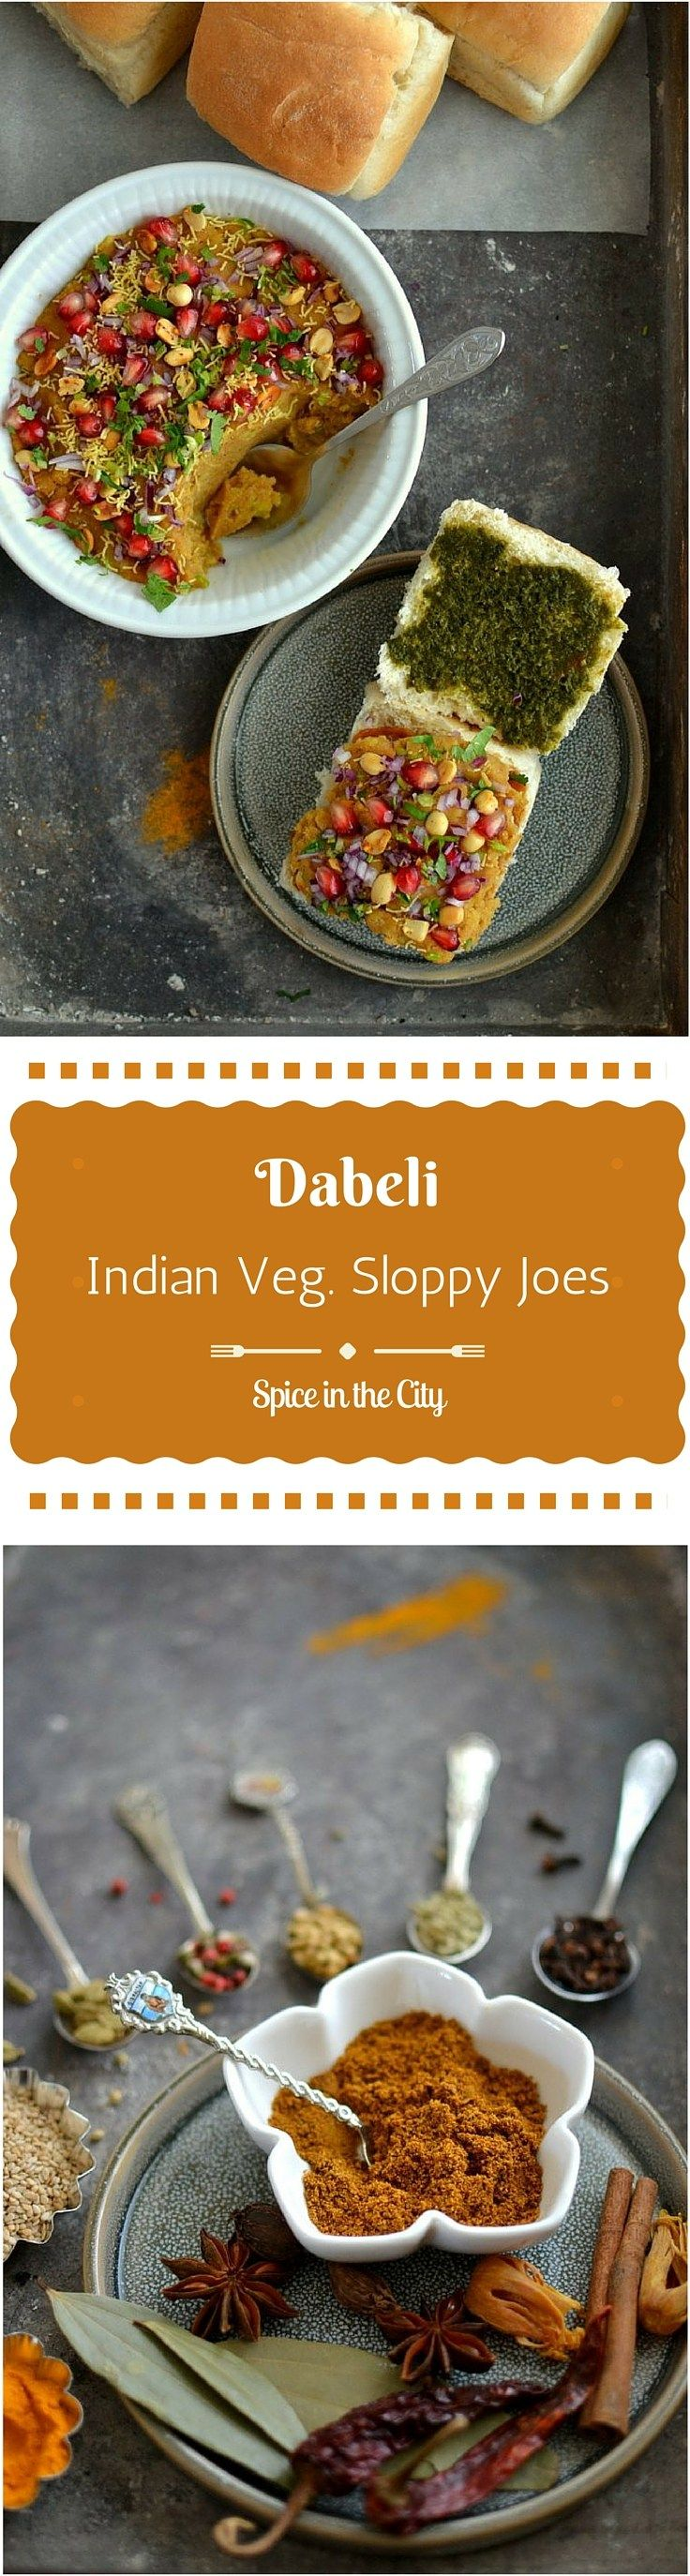 Dabeli with Homemade Dabeli Masala | Spice in the City: Wickedly Delicious Indian Vegetarian Sloppy Joes with a delectable Potato, Pomegranate and Peanuts filling, packed with flavor from a special spice blend! Serve this fabulous Street Food at your next soiree!